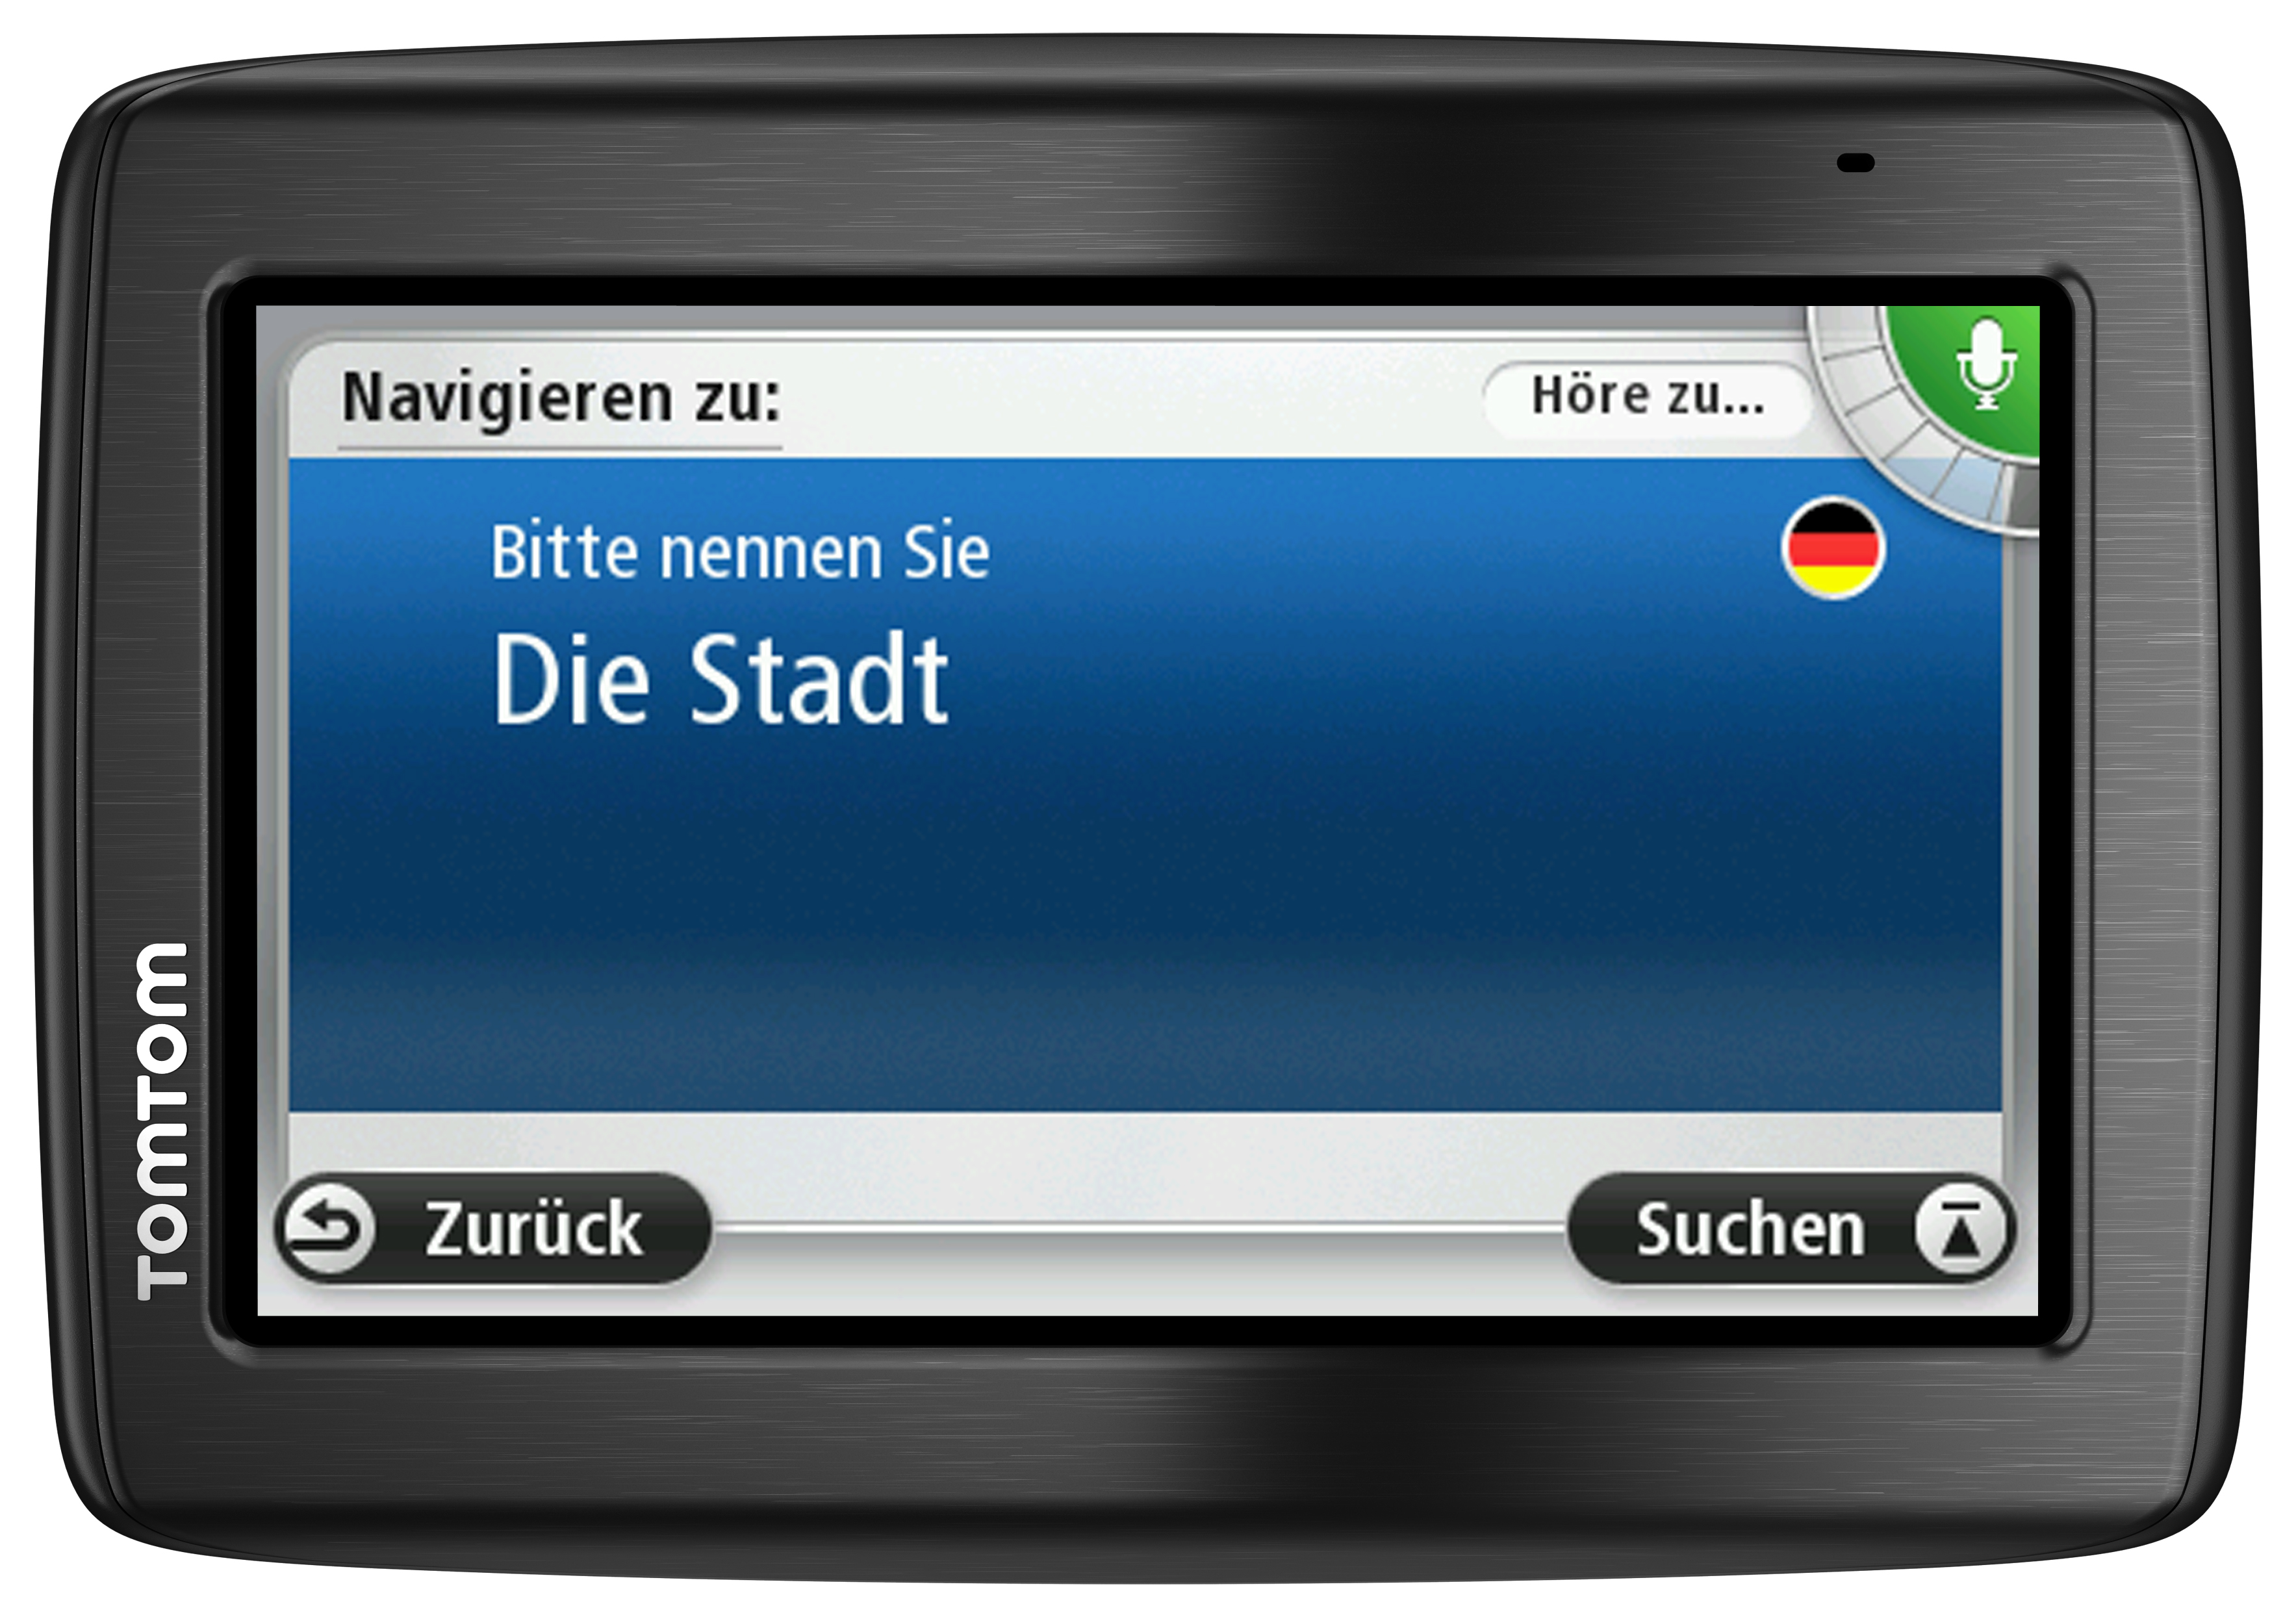 ...und der TomTom Via 130 mit der neuen Sprachsteuerungssoftware Speak &amp; Go f&#252;r 179 Euro in die Regale.